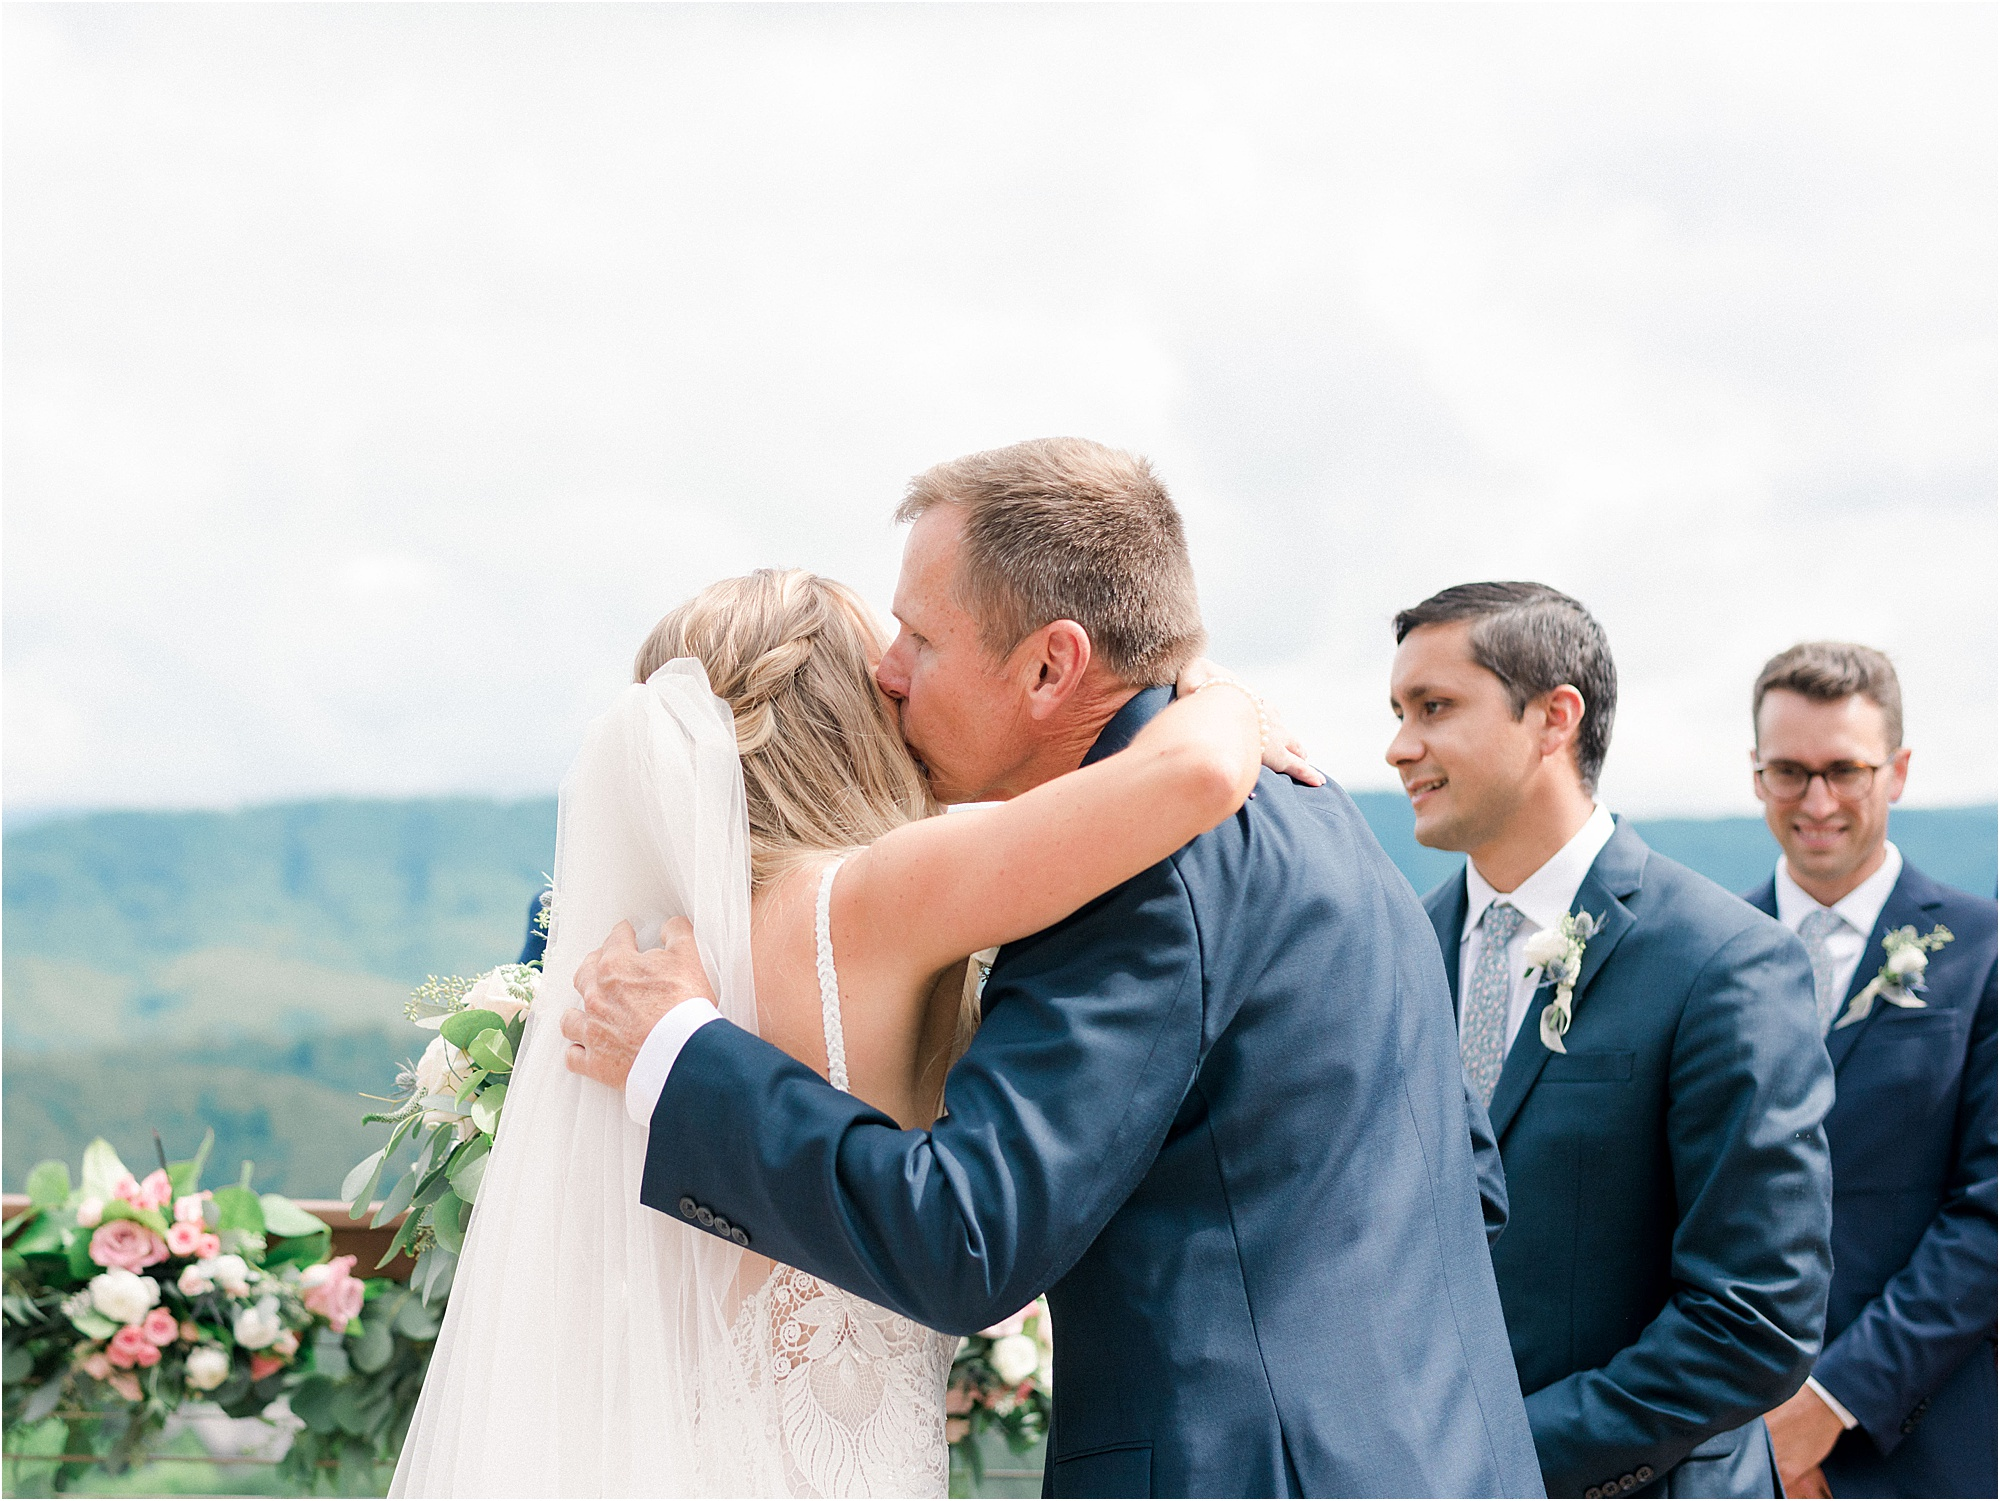 father hugs daughter at wedding ceremony